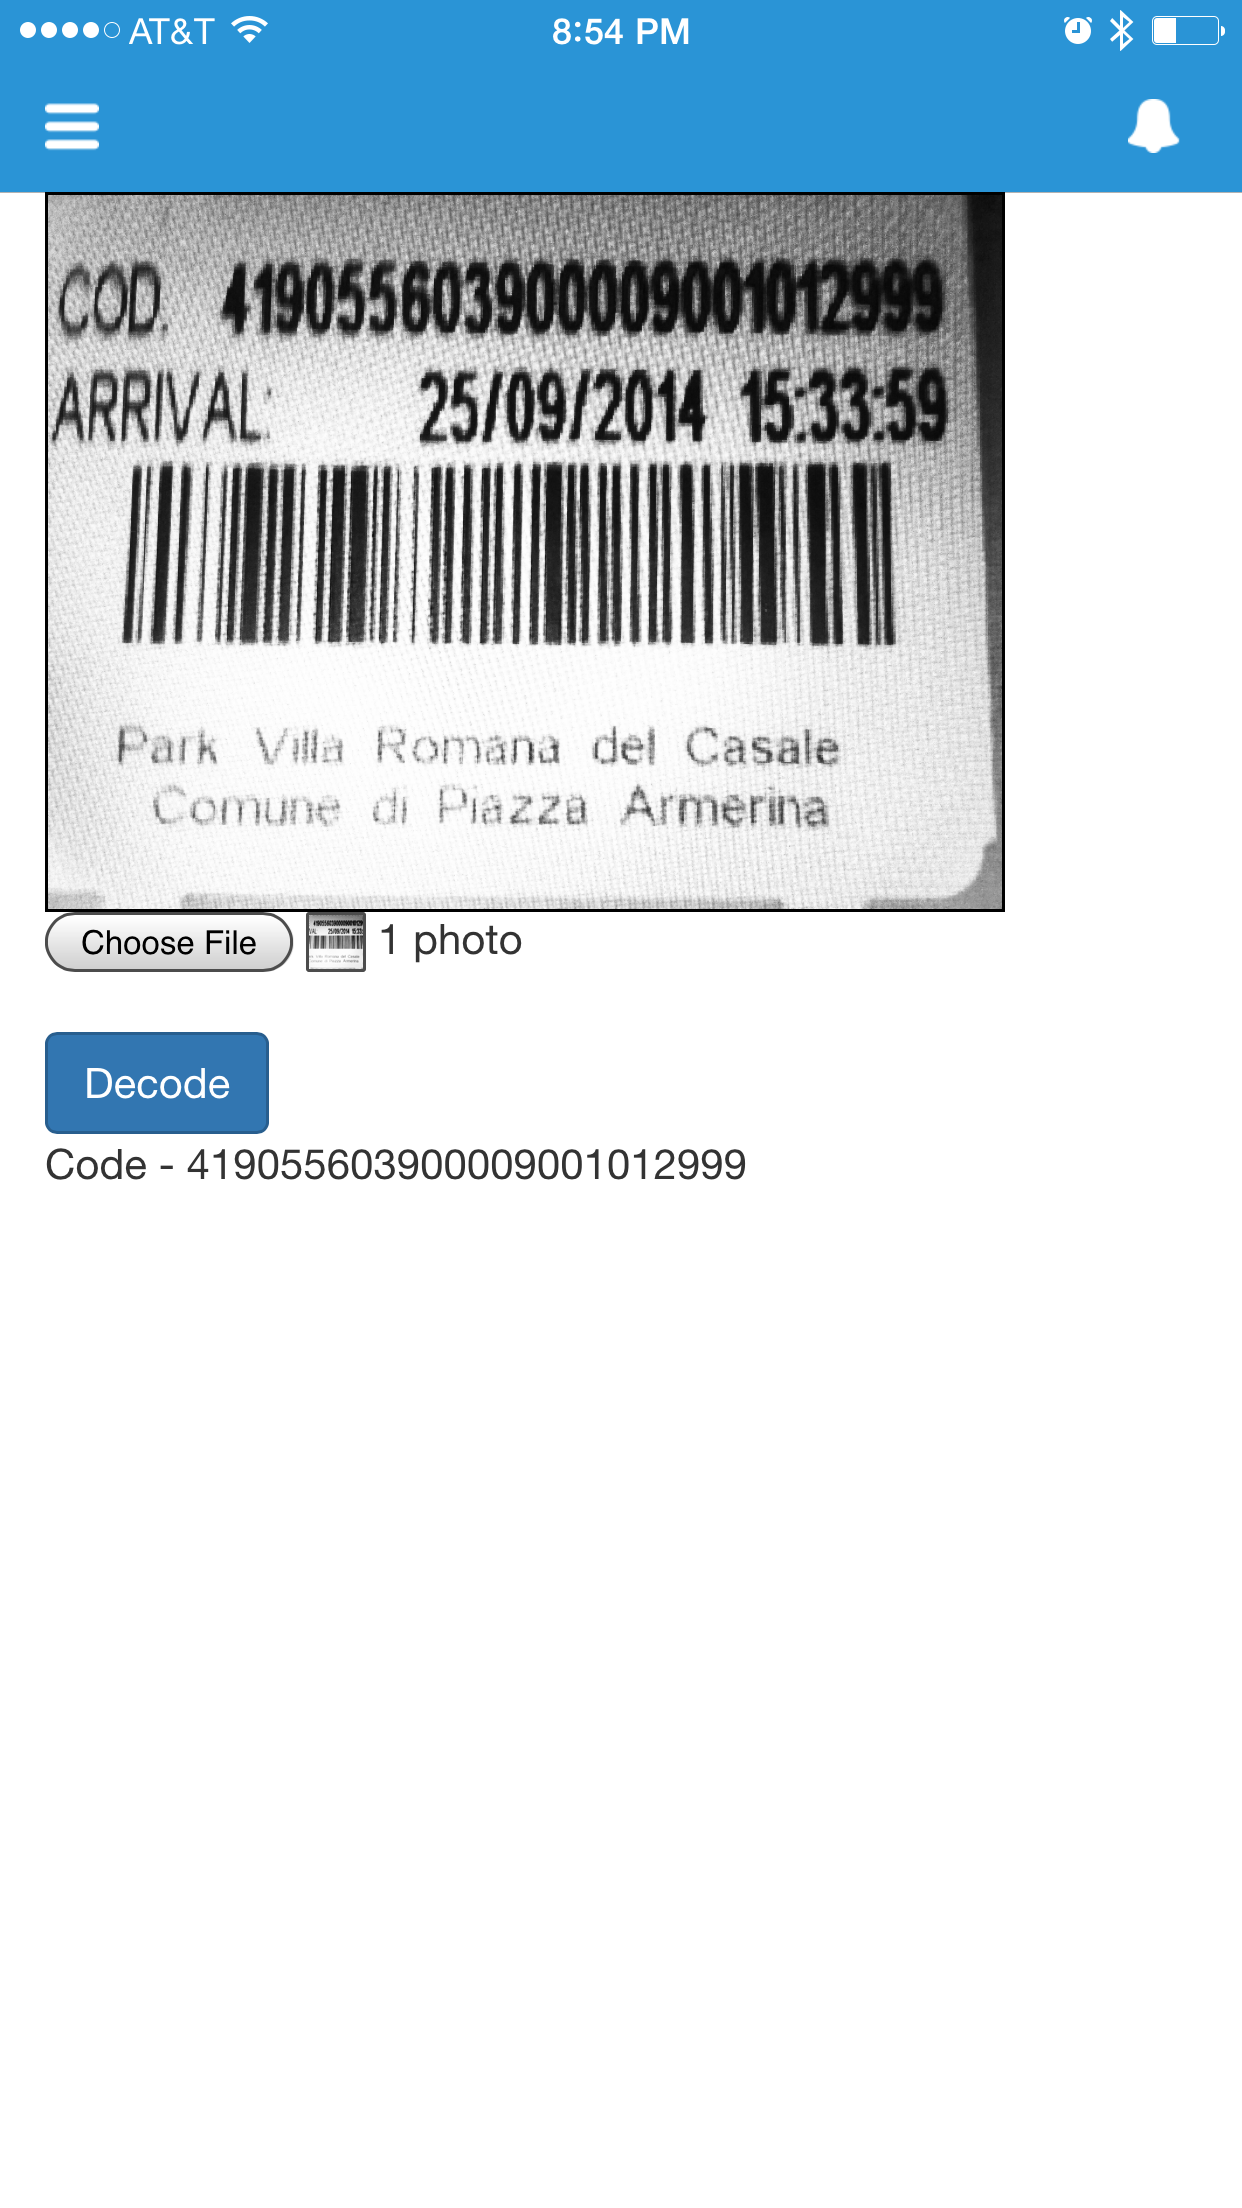 Javascript based Barcode decoder in Salesforce1 – Very fast and